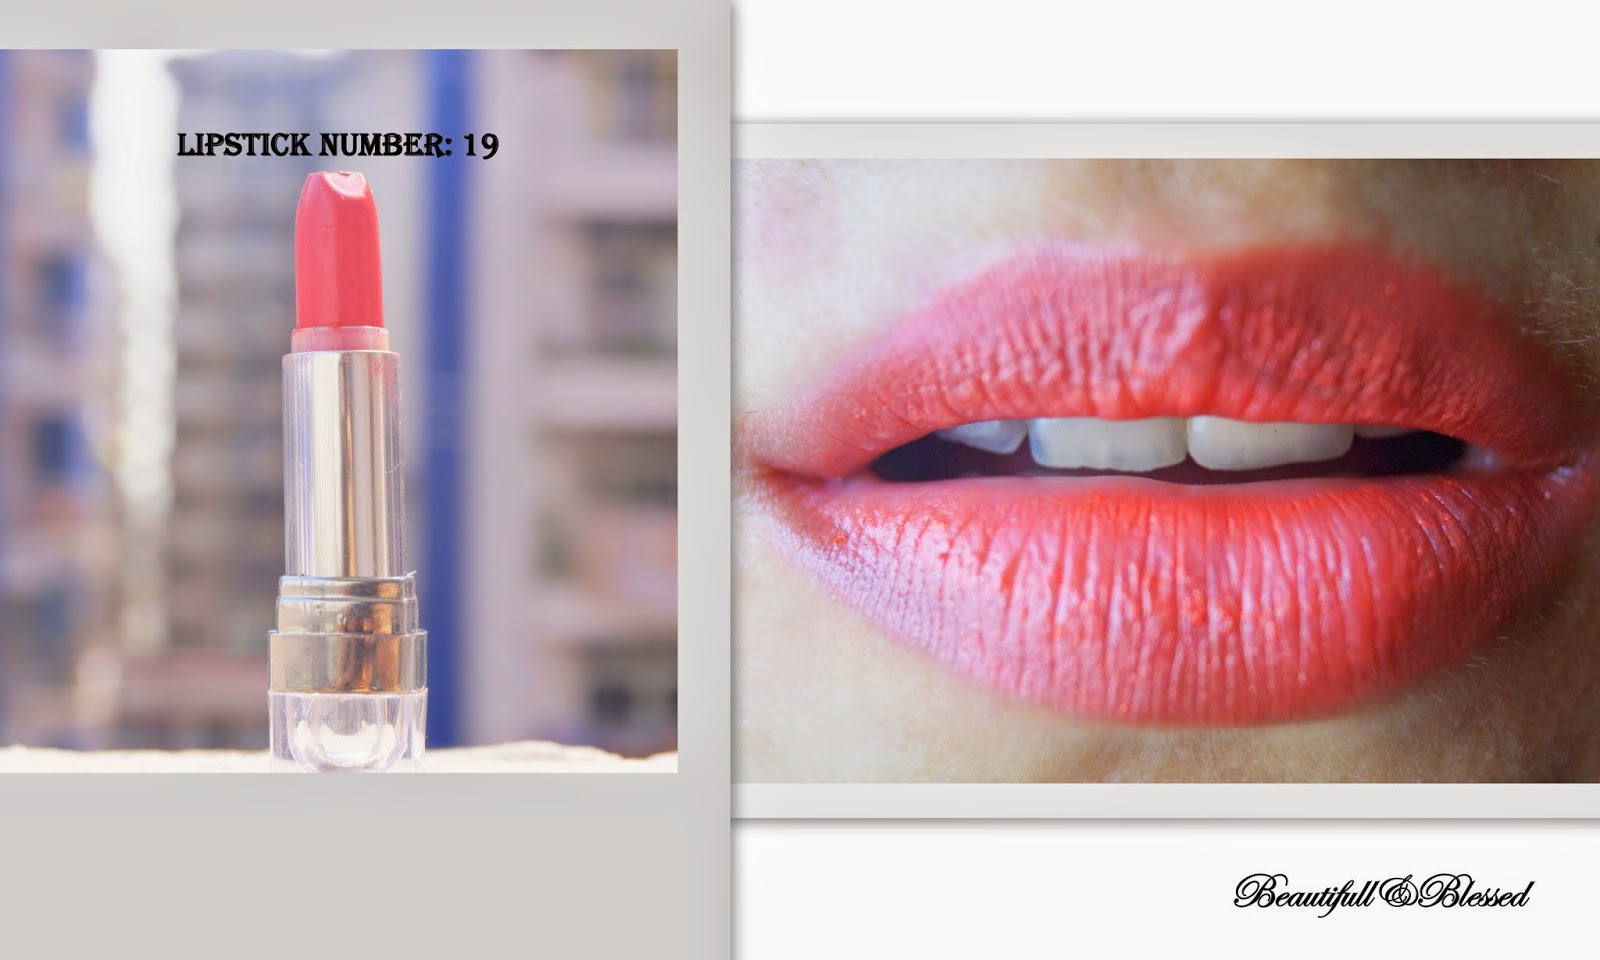 Colour care london lipstick price - 01 This Is A Perfect Color For Fall Winters It Is A Deep Berry Shade I Absolutely Love It It Would Go Amazingly Well With Paler To Medium Complexions